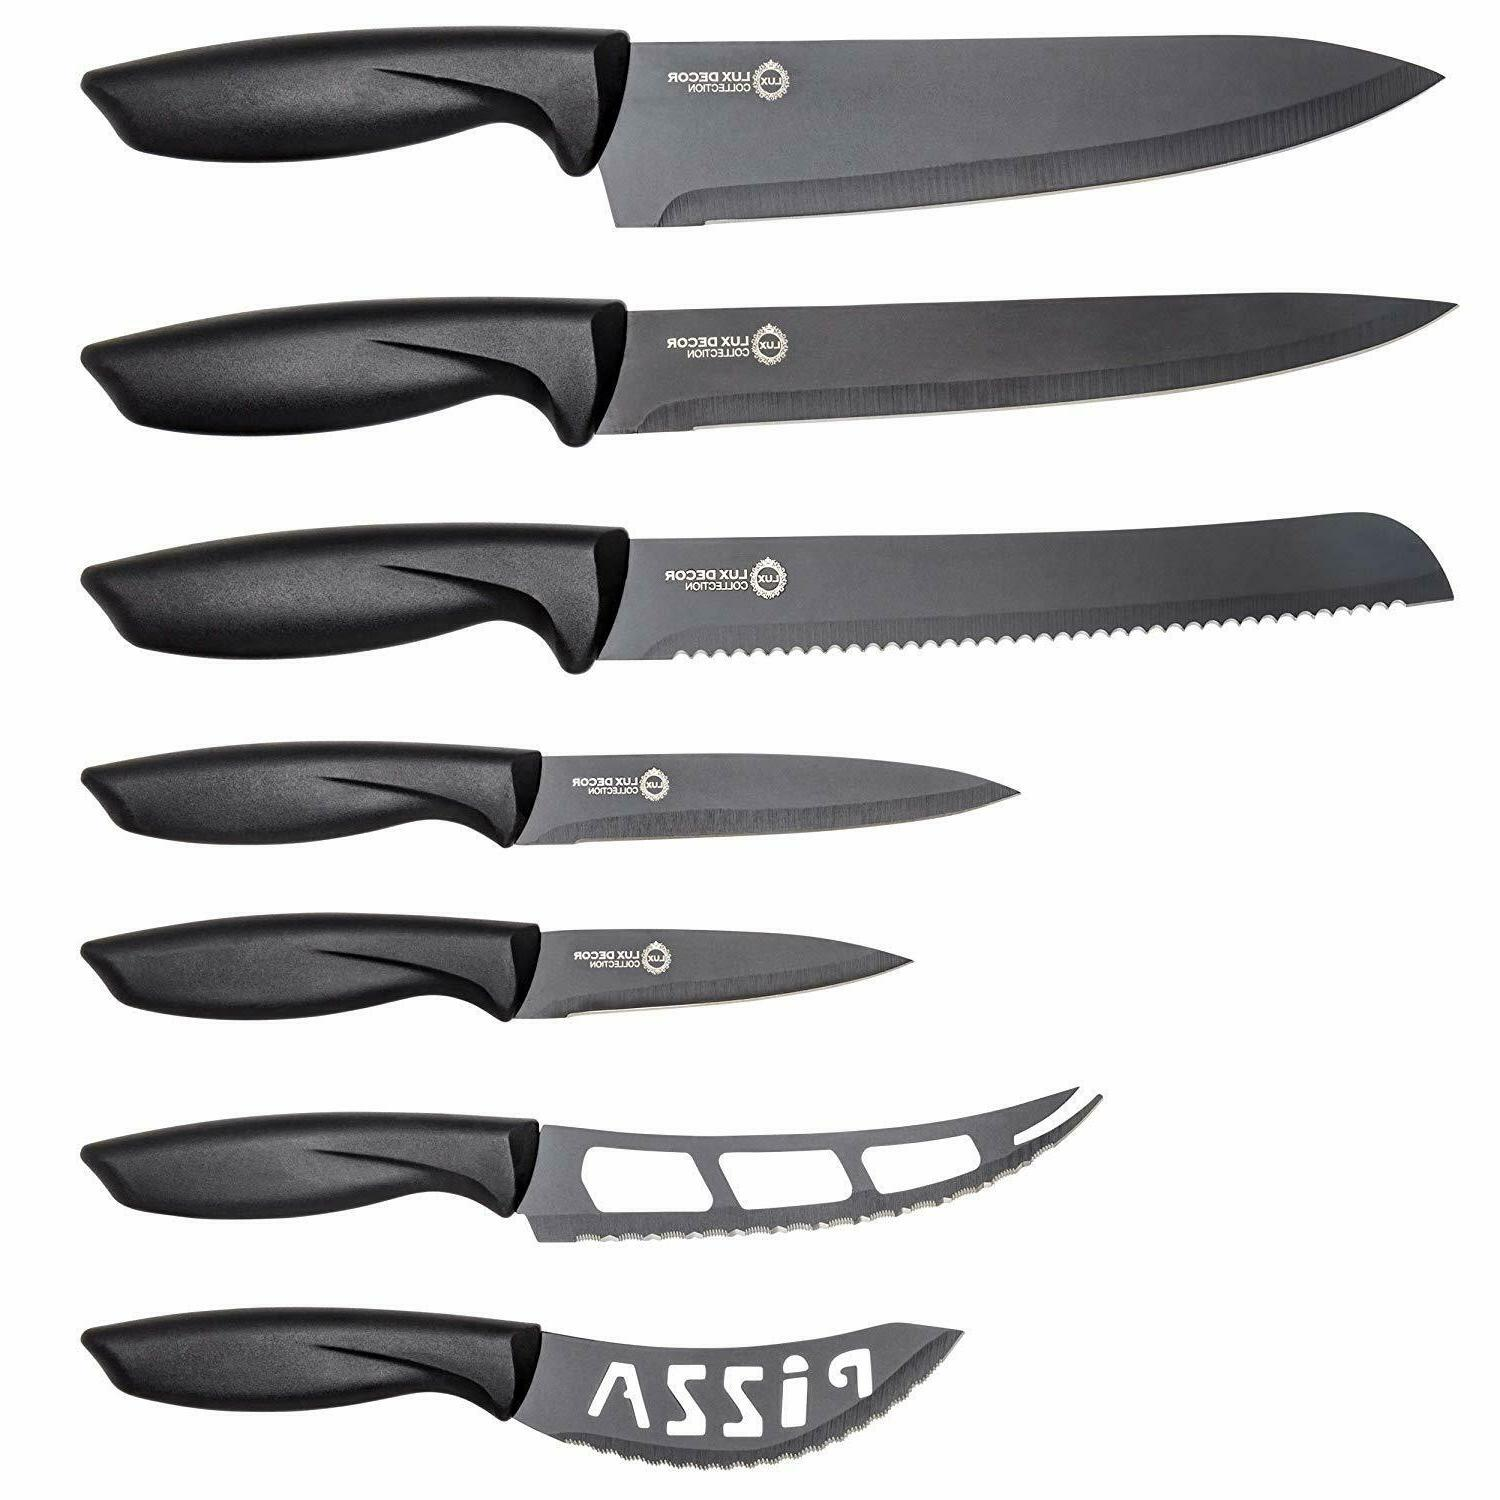 Professional Kitchen Knife Set-7pc Cutlery Set